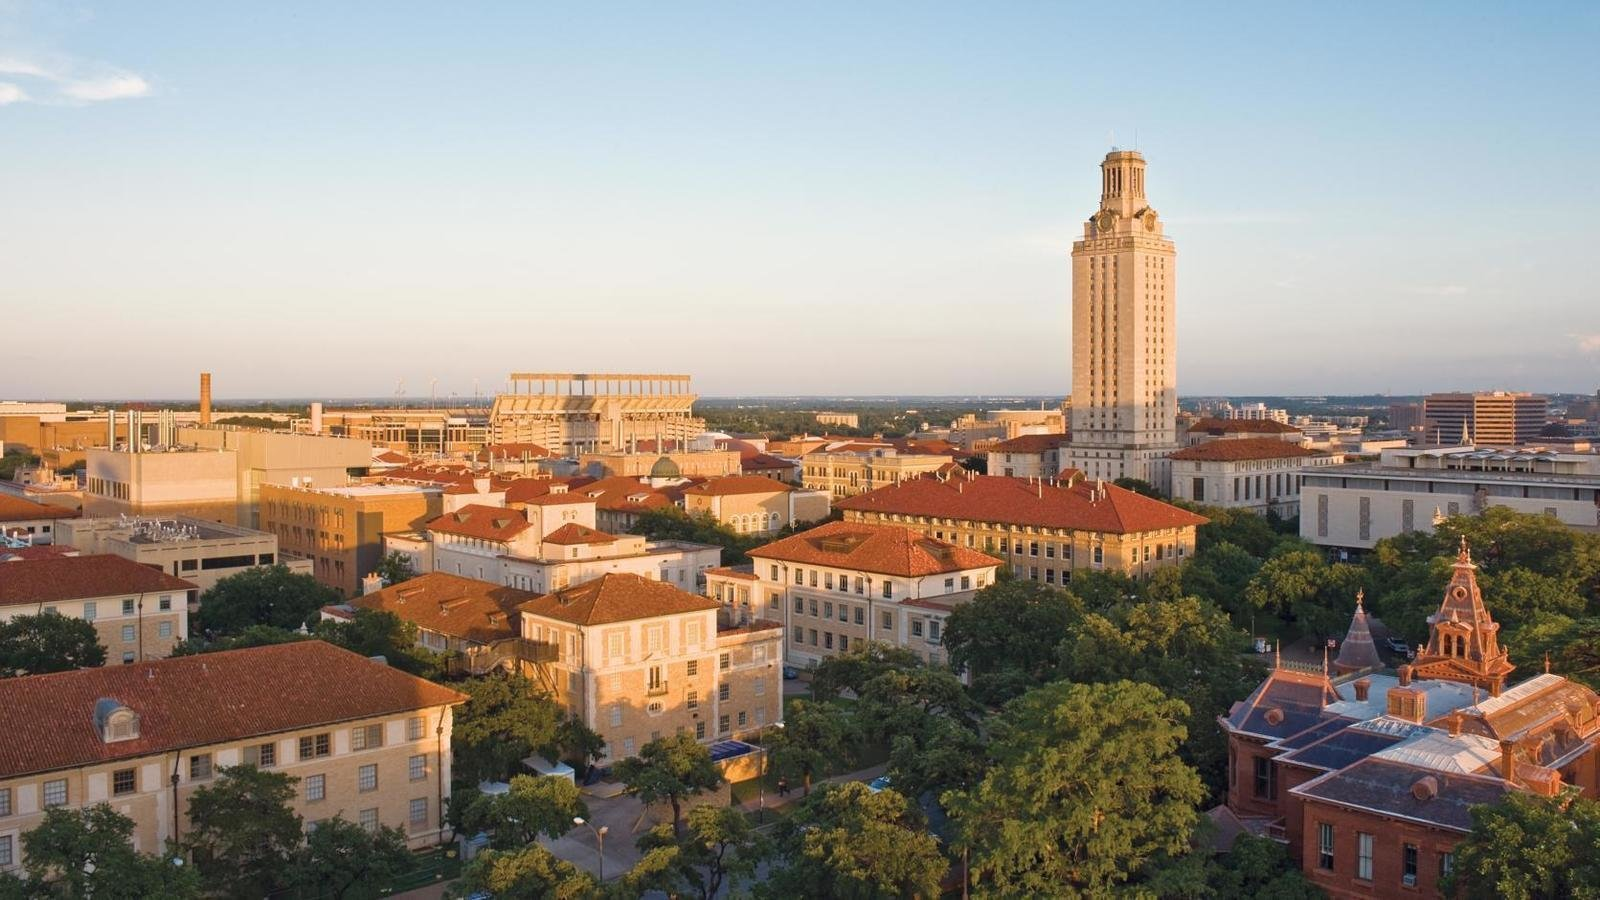 university of texas austin essay length University of texas austin essay length personal essay creative writing april 25, 2018 admission applications, scholarship essays, act this saturday, not to mention regular school homework my life is so stressful #stressed complete text death of a salesman essay essay on to love someone.